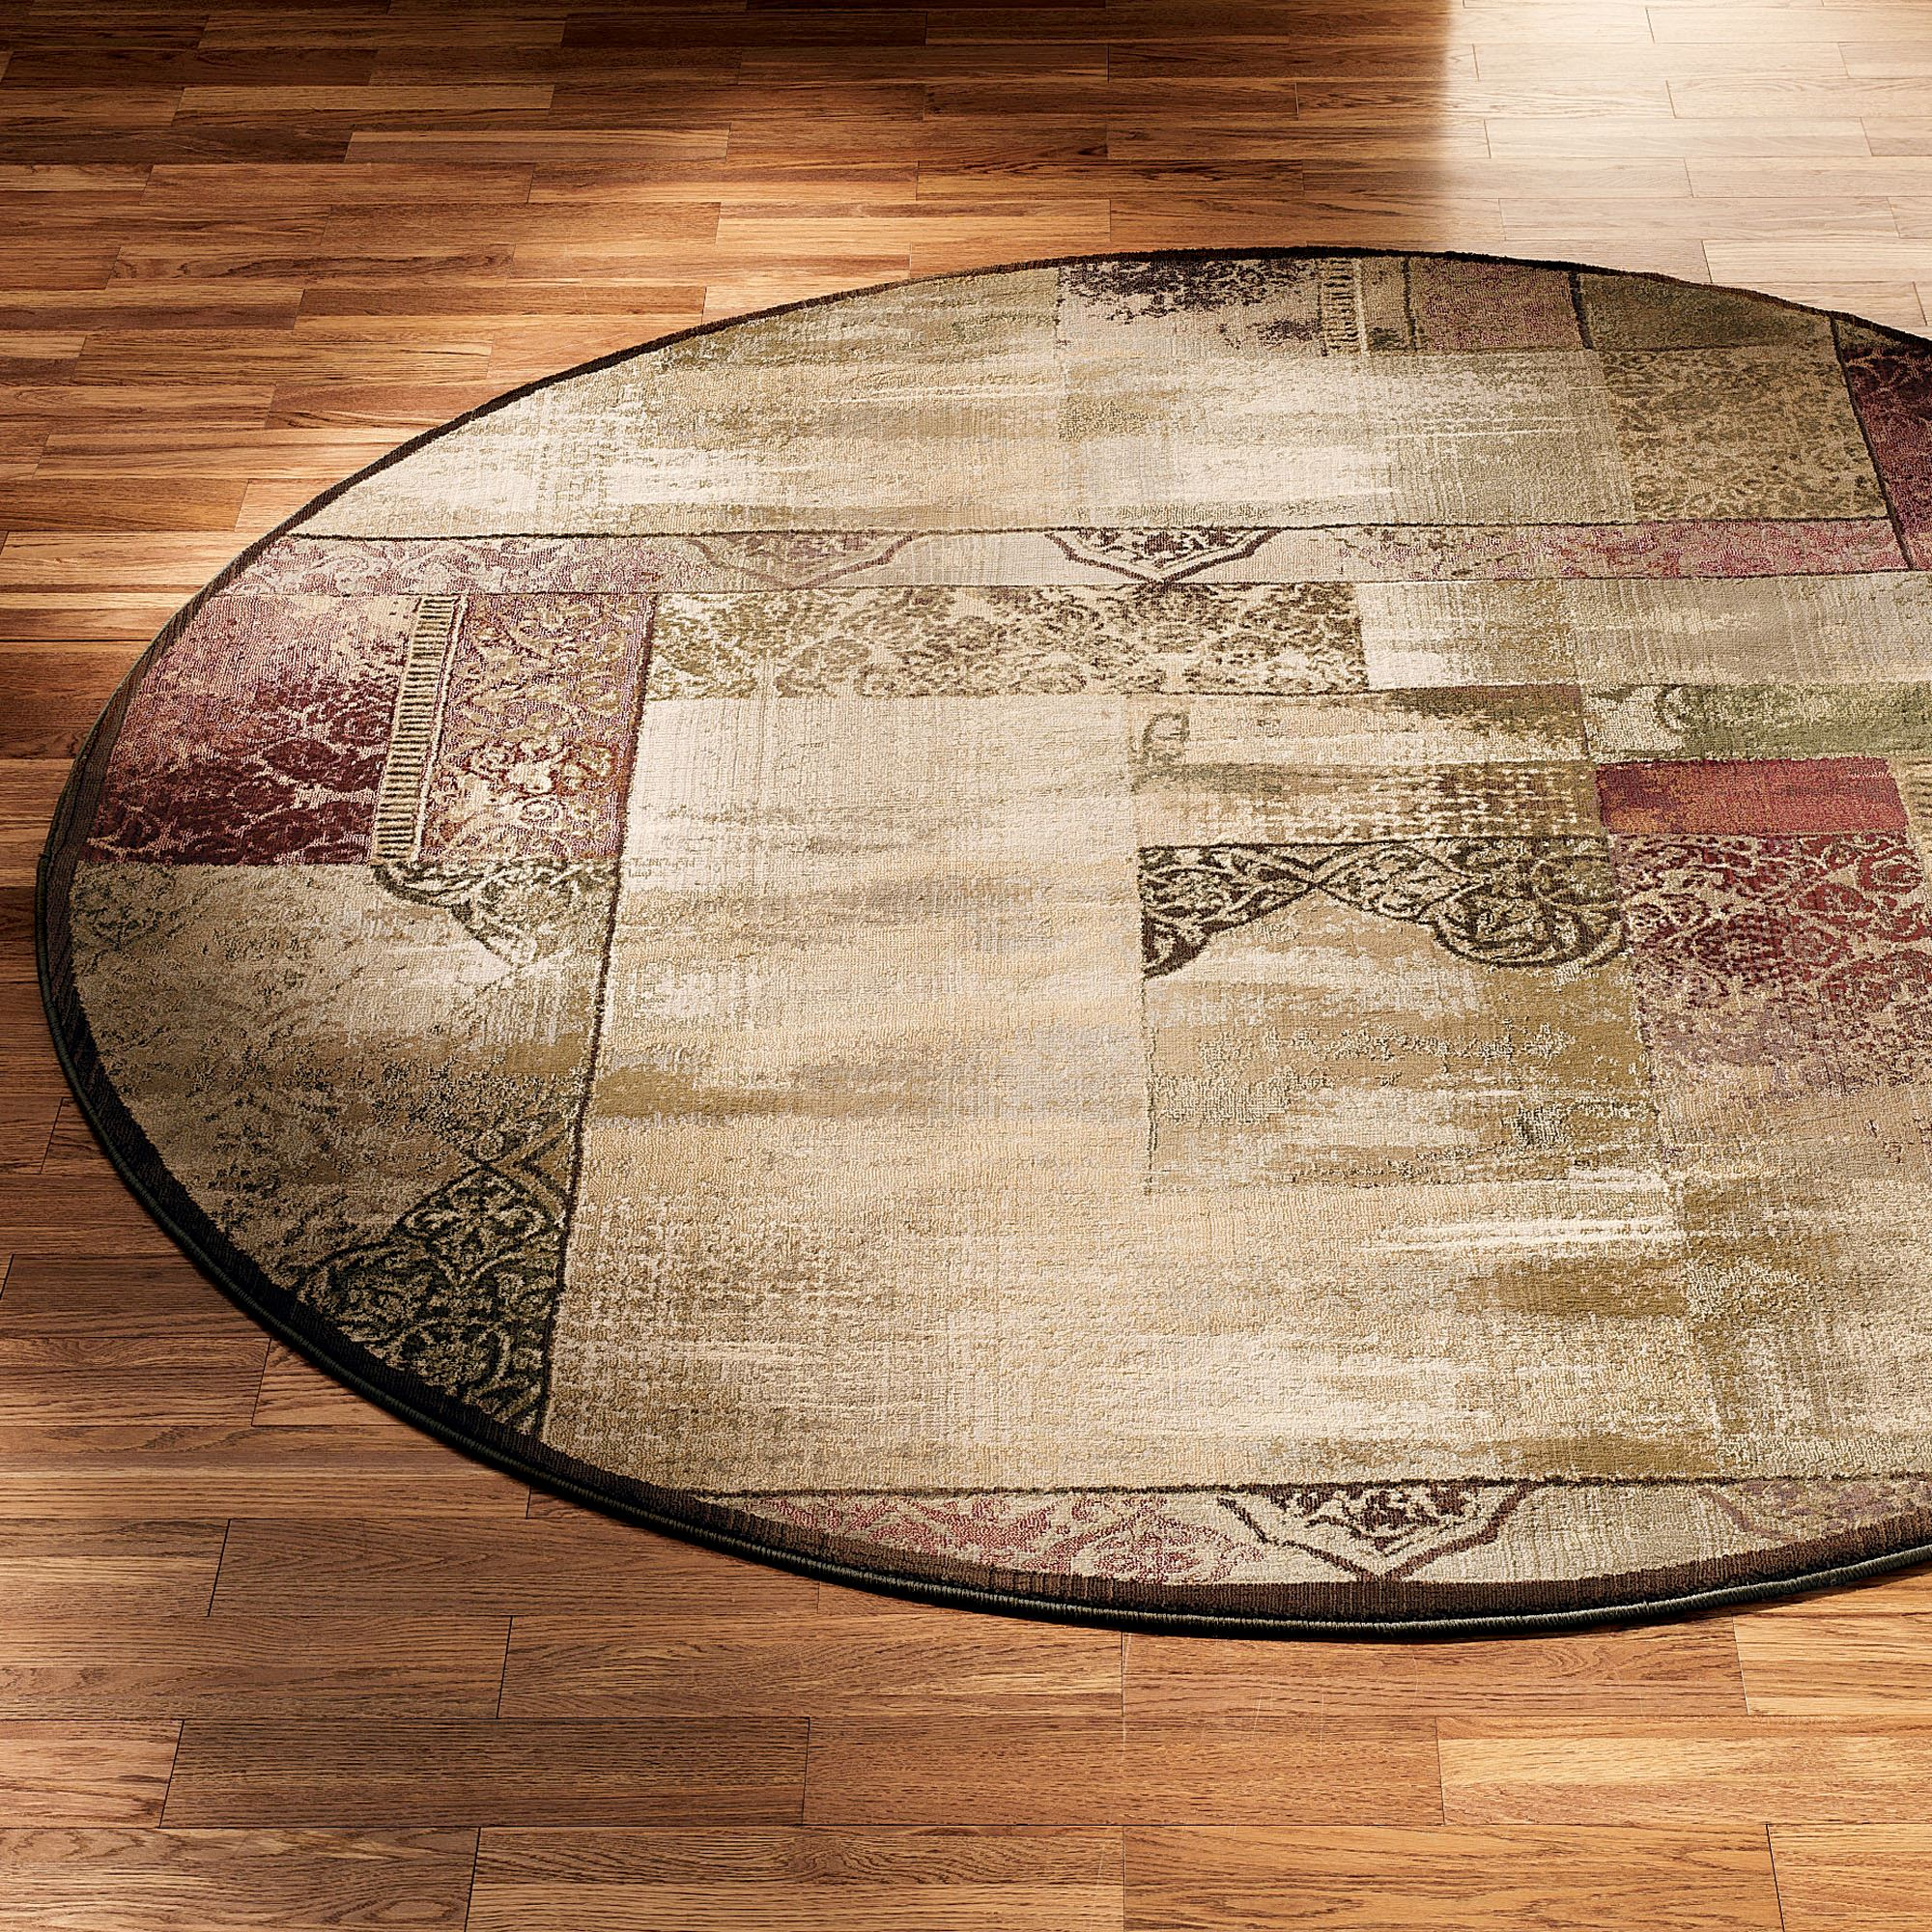 rug astonishing cievi area ideas rugs wonderful round